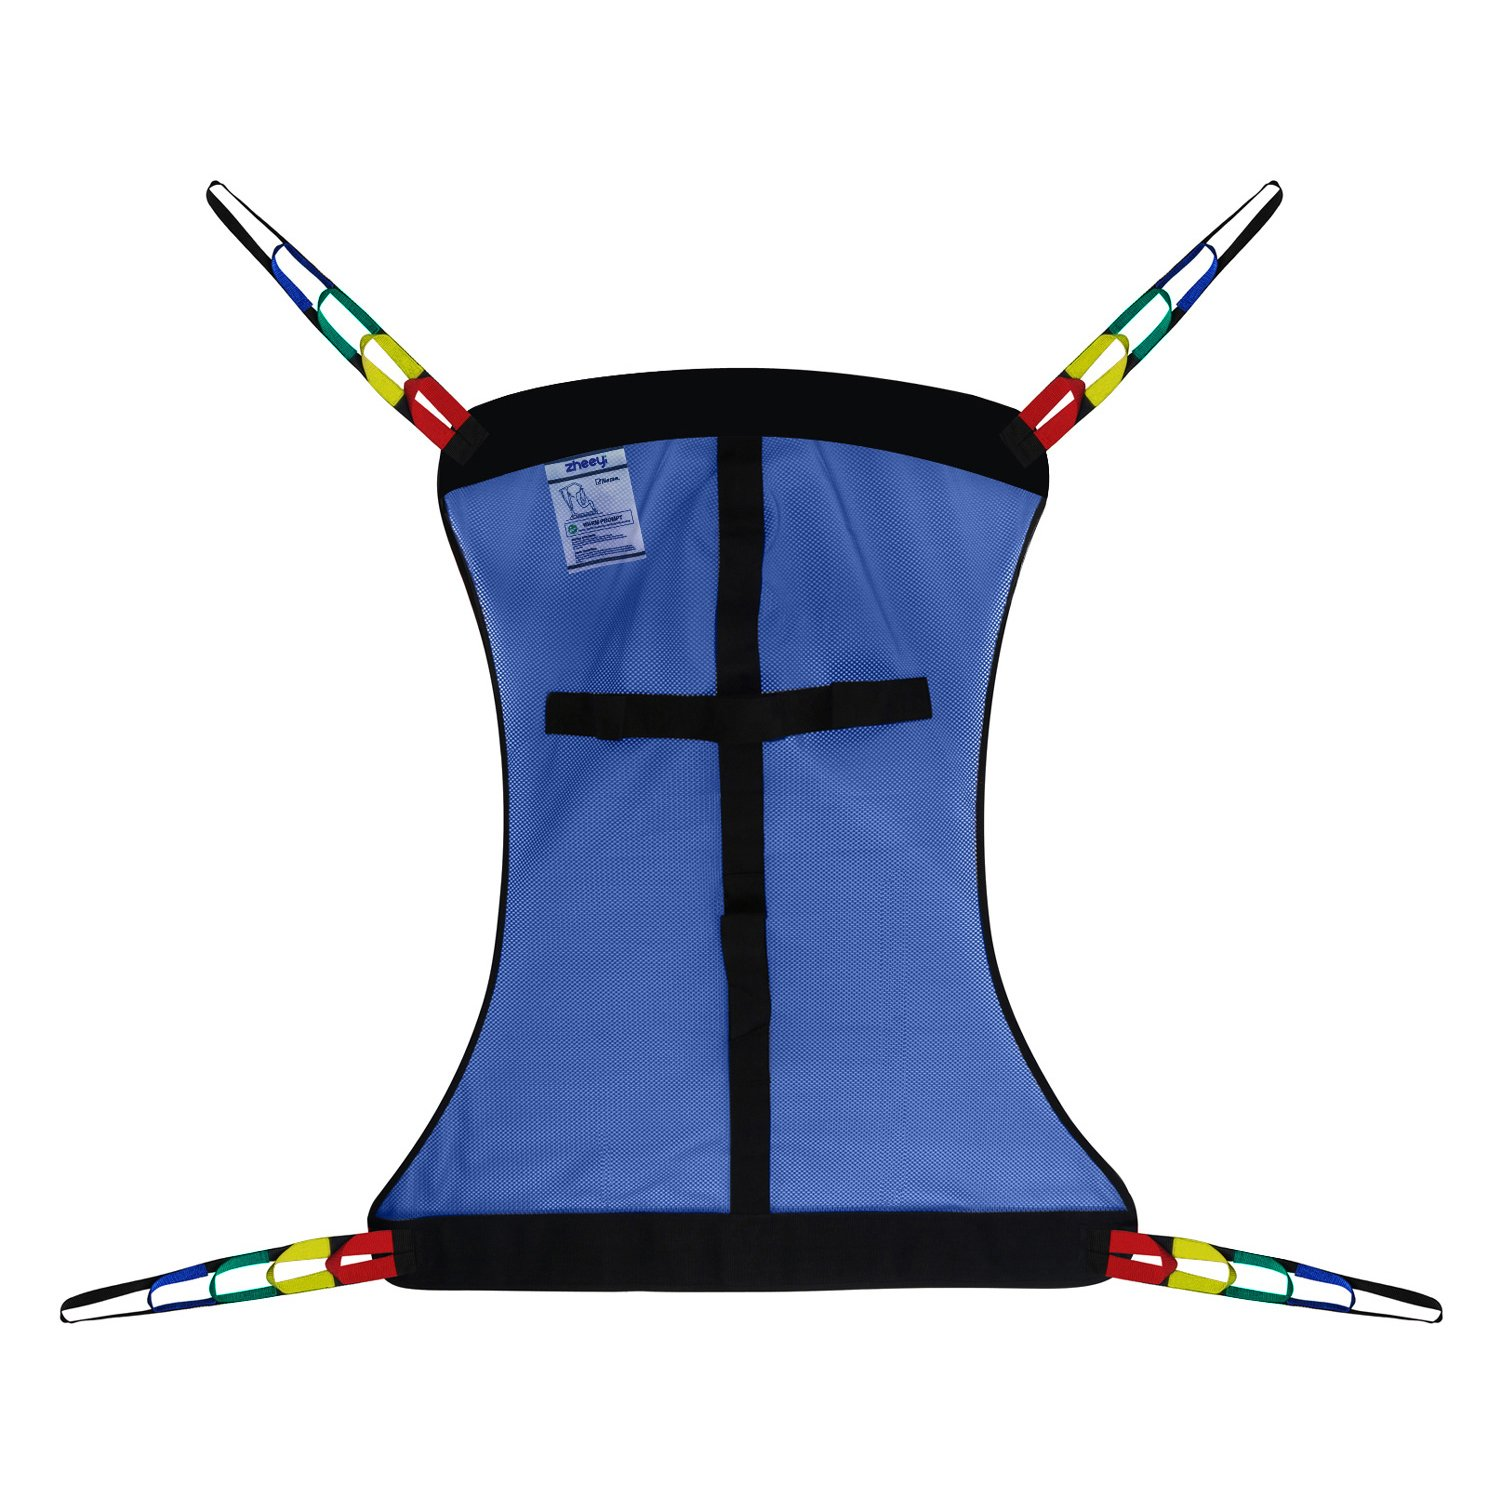 Full Body Patient Lift Sling, Mesh Without Commode Opening, Medium (Blue)